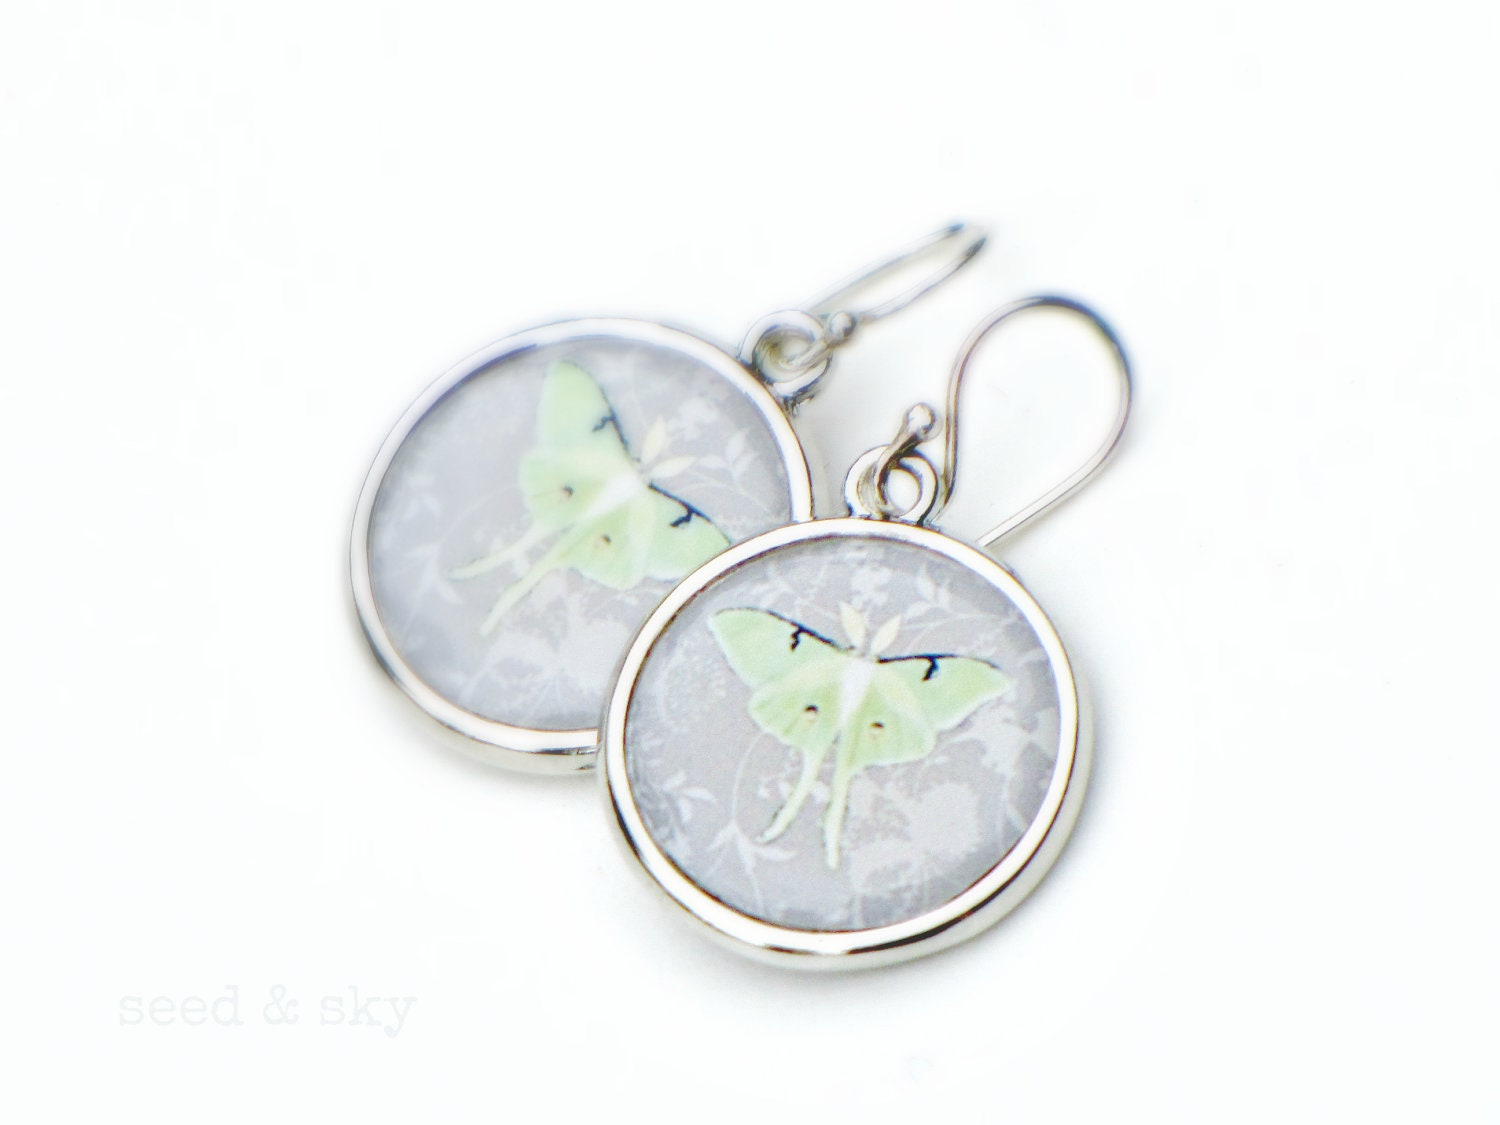 LUNA MOTH EARRINGS -  Double Sided Mint Green Gray Grey Jewelry - Butterfly Moth Earrings - elegant gray jewelry - SeedandSky